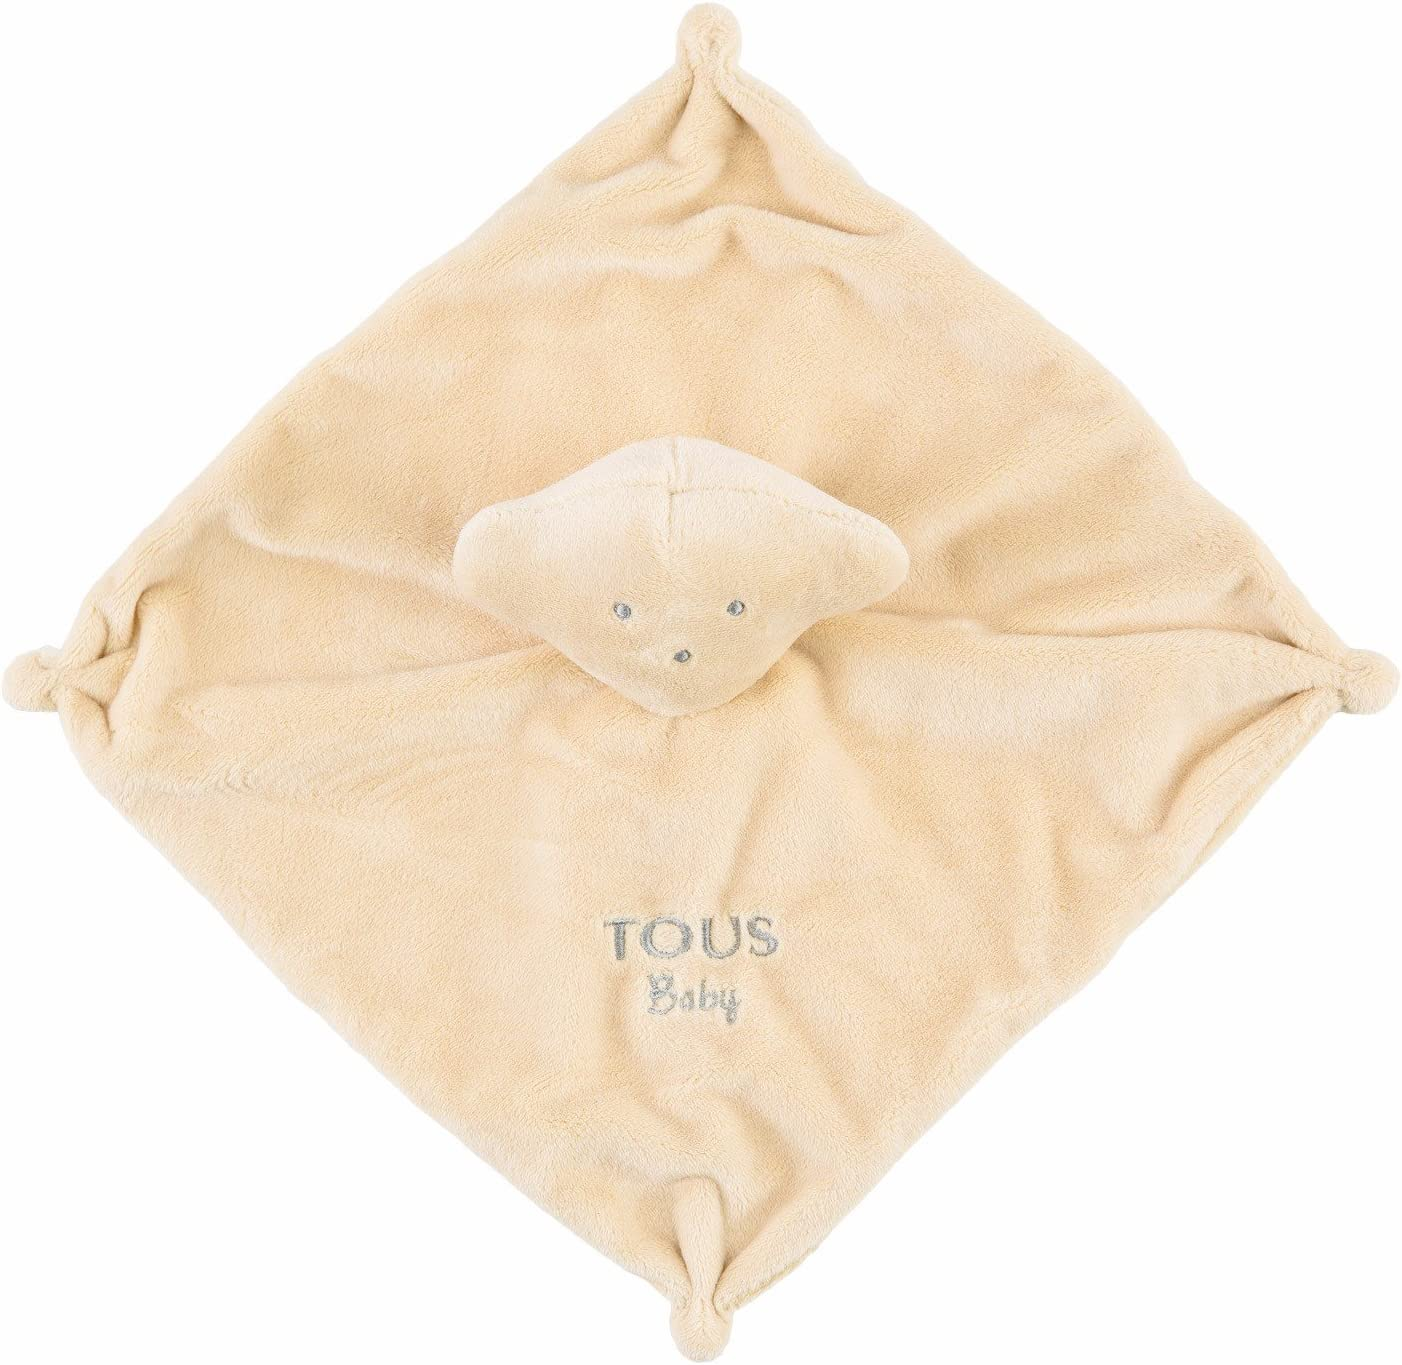 Tous Baby- Mantita de Seguridad, Color Beige (T.Bear-602_00014_0/36M)